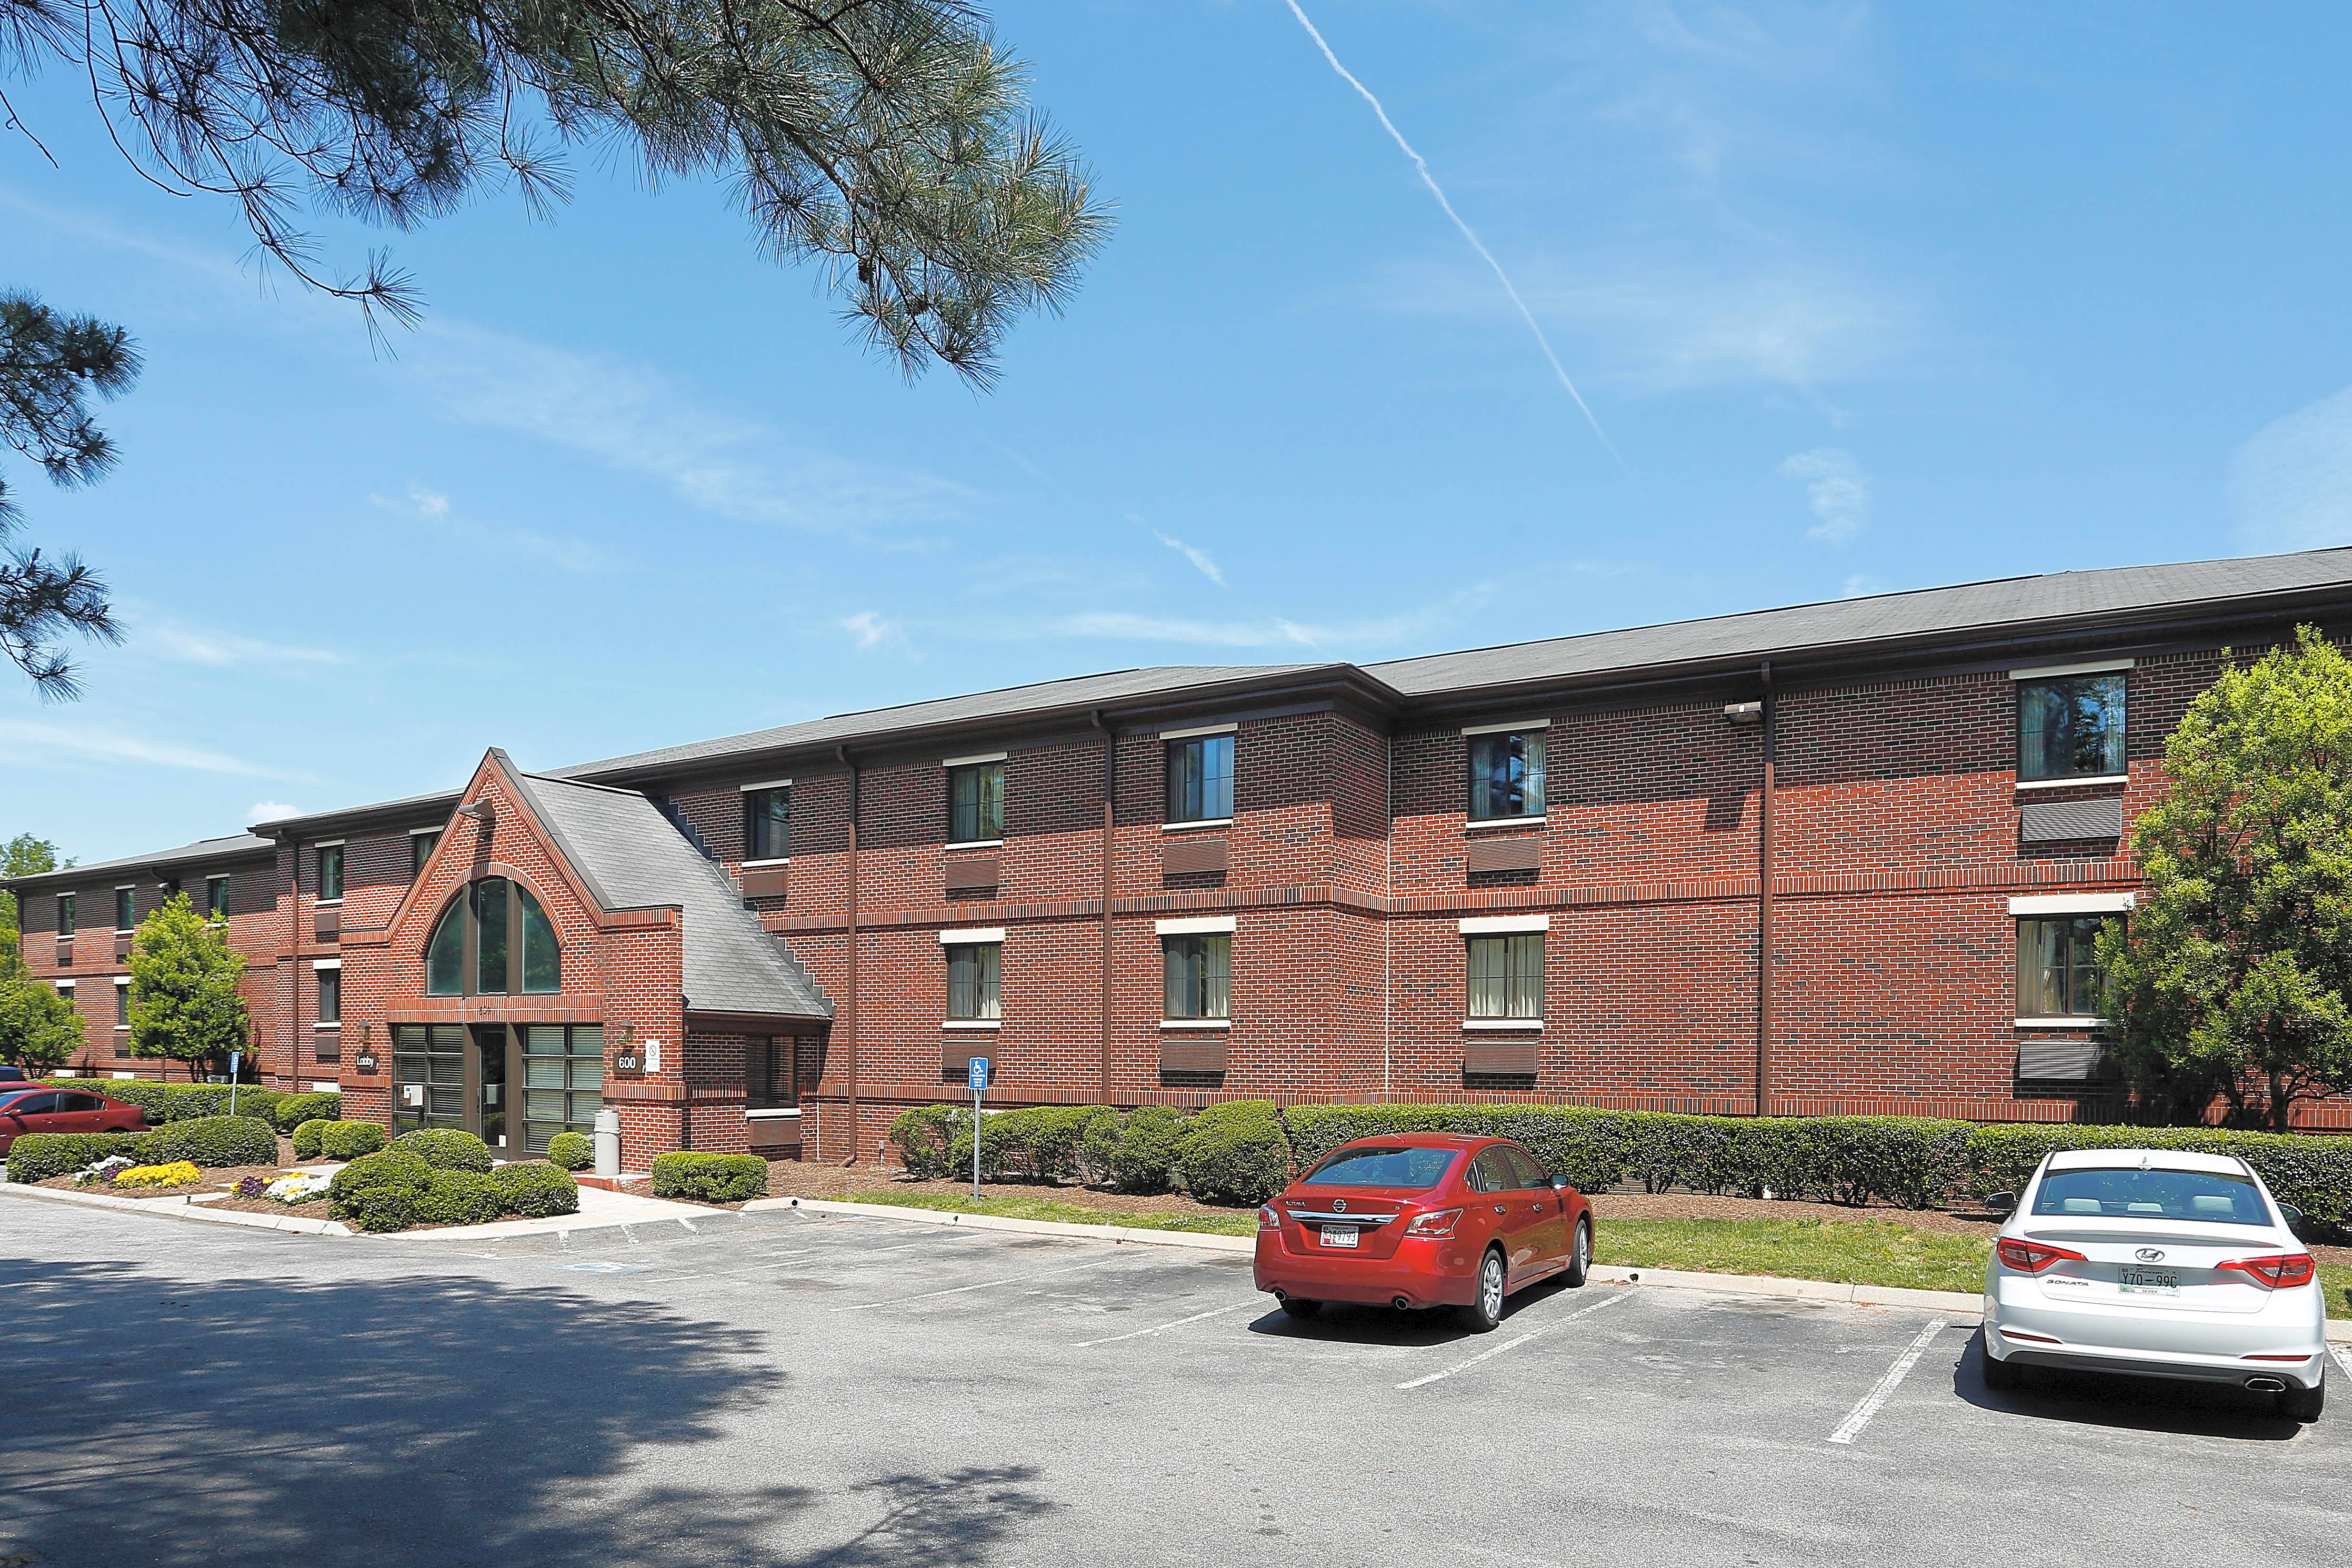 Apartments Near NC State Furnished Studio - Raleigh - Cary - Harrison Ave. for North Carolina State University Students in Raleigh, NC